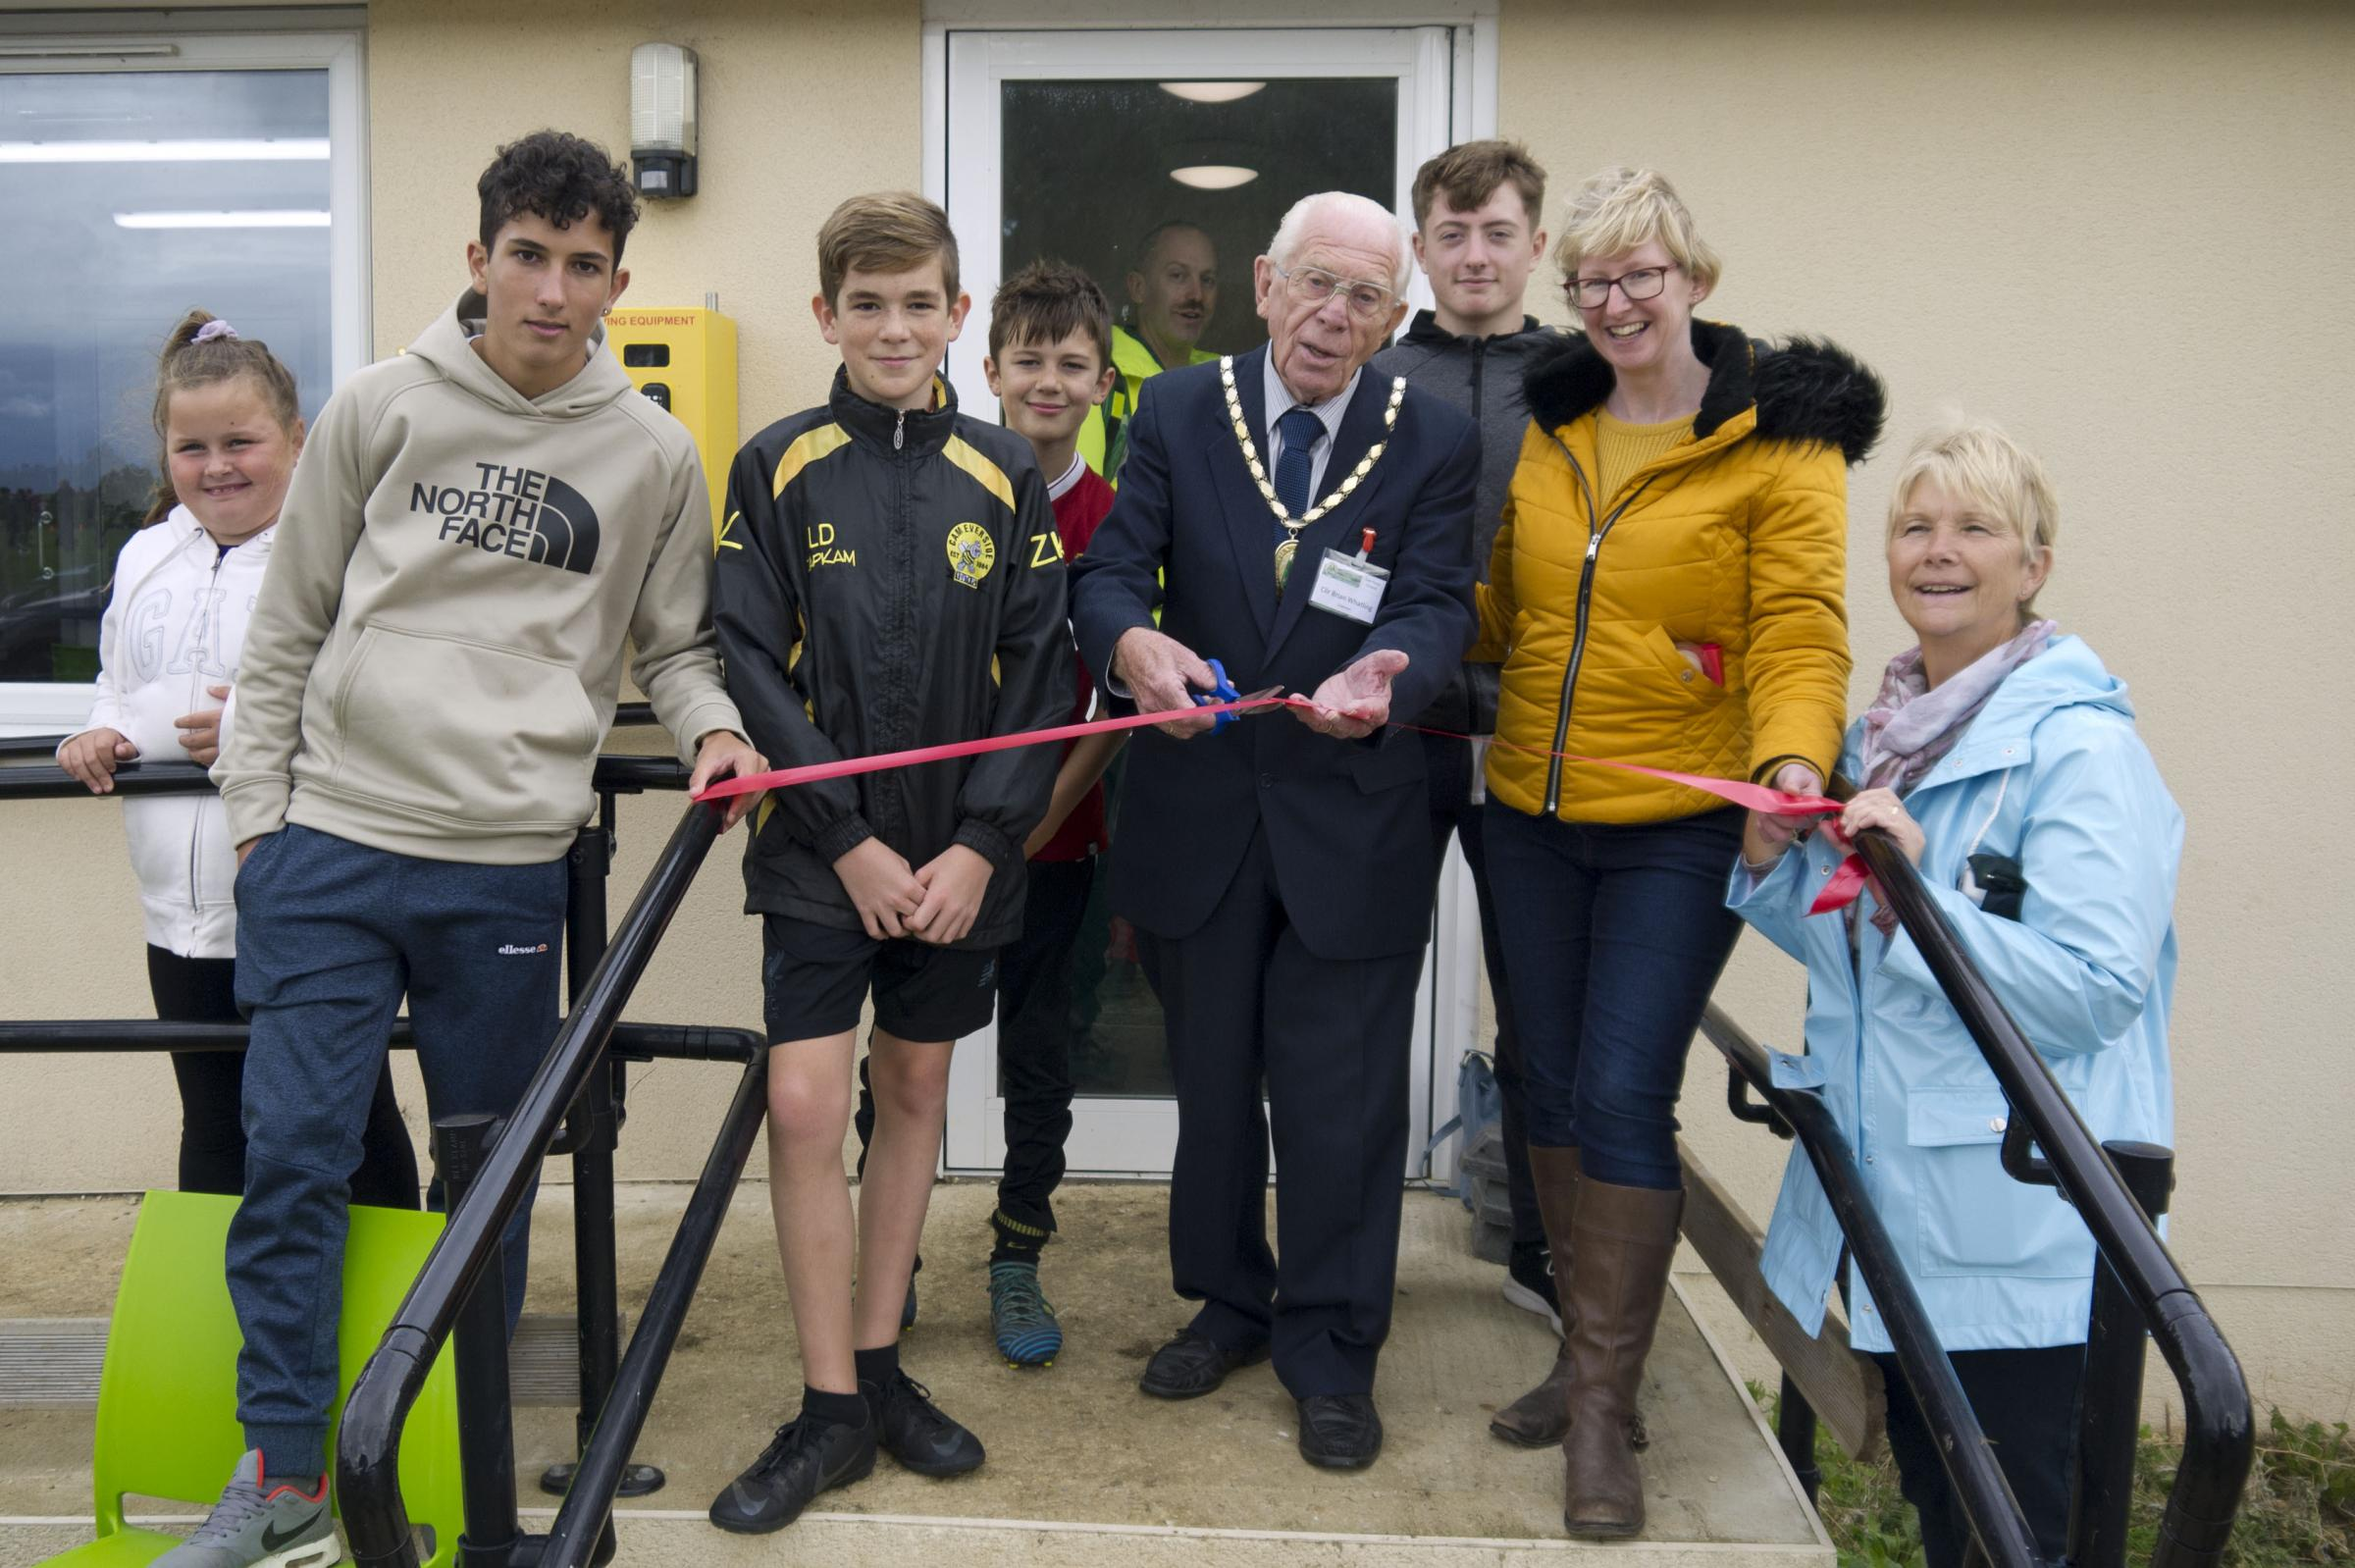 Brian Whatling, Cam Parish chair officially opened the Pavilion at Jubilee Fields on Saturday